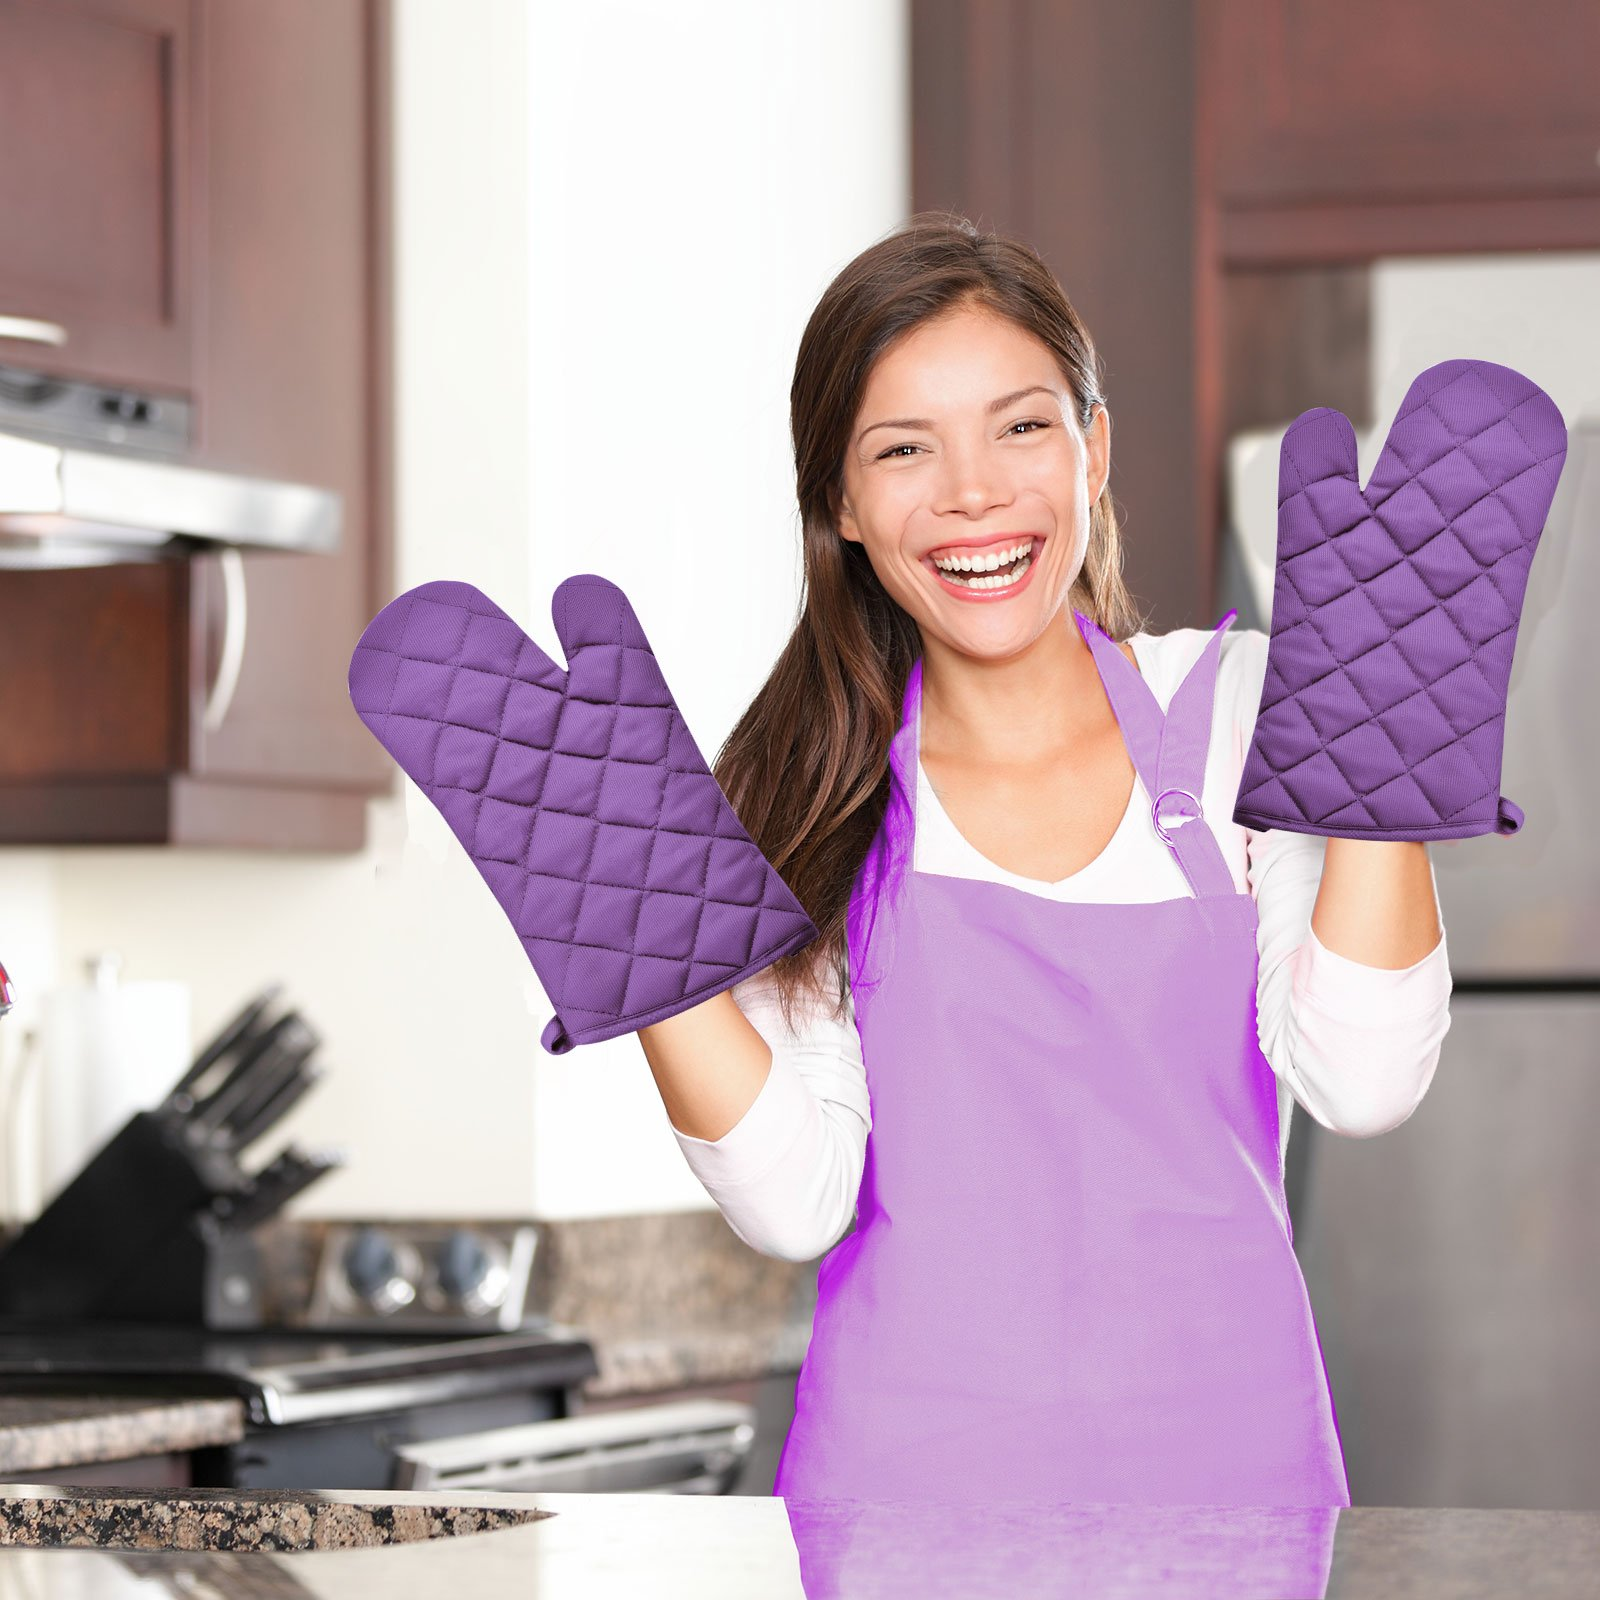 VEEYOO Cotton Oven Mitts Pot Holders Set - Kitchen Silicone Oven Mitt Heat Resistant, Non-slip Grip Oven Gloves Potholder 3 Packs Cooking, Baking & BBQ, Purple by VEEYOO (Image #7)